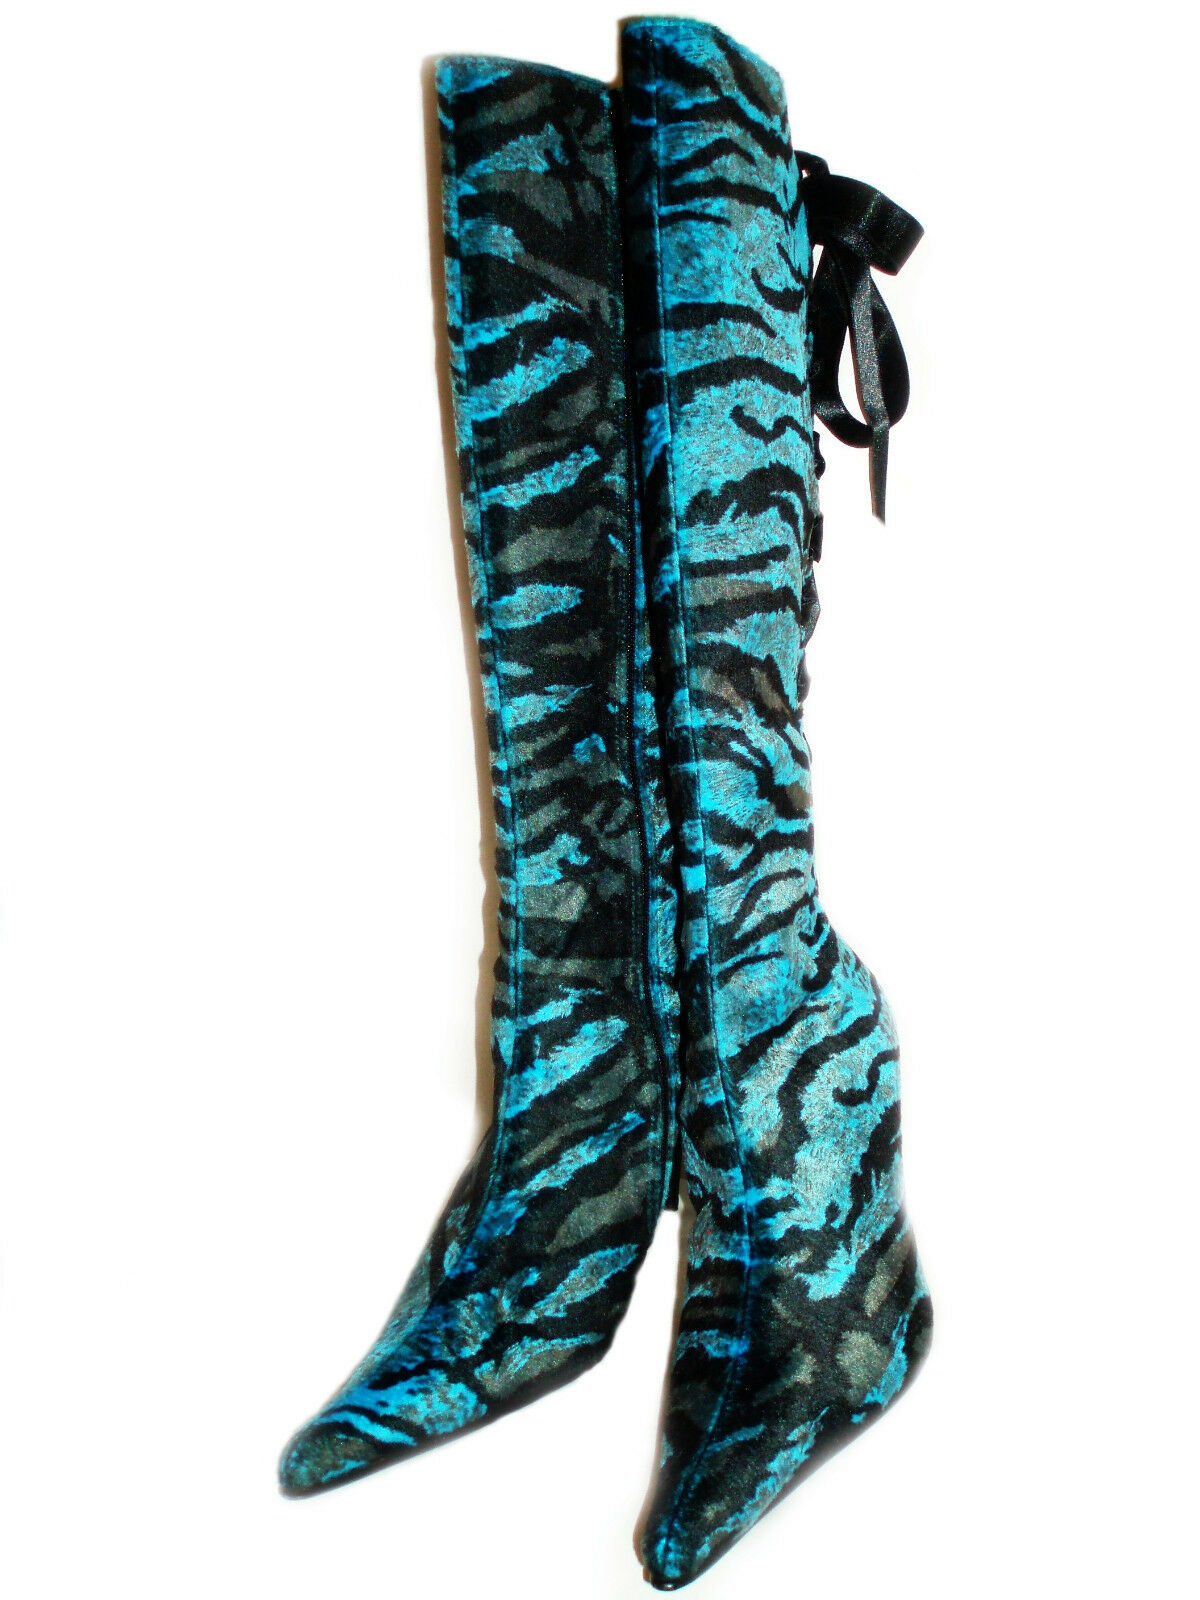 New blau Lace Braun Tiger Suede Stiefel Knee-high Lace blau up back Heels Size 9 295f51